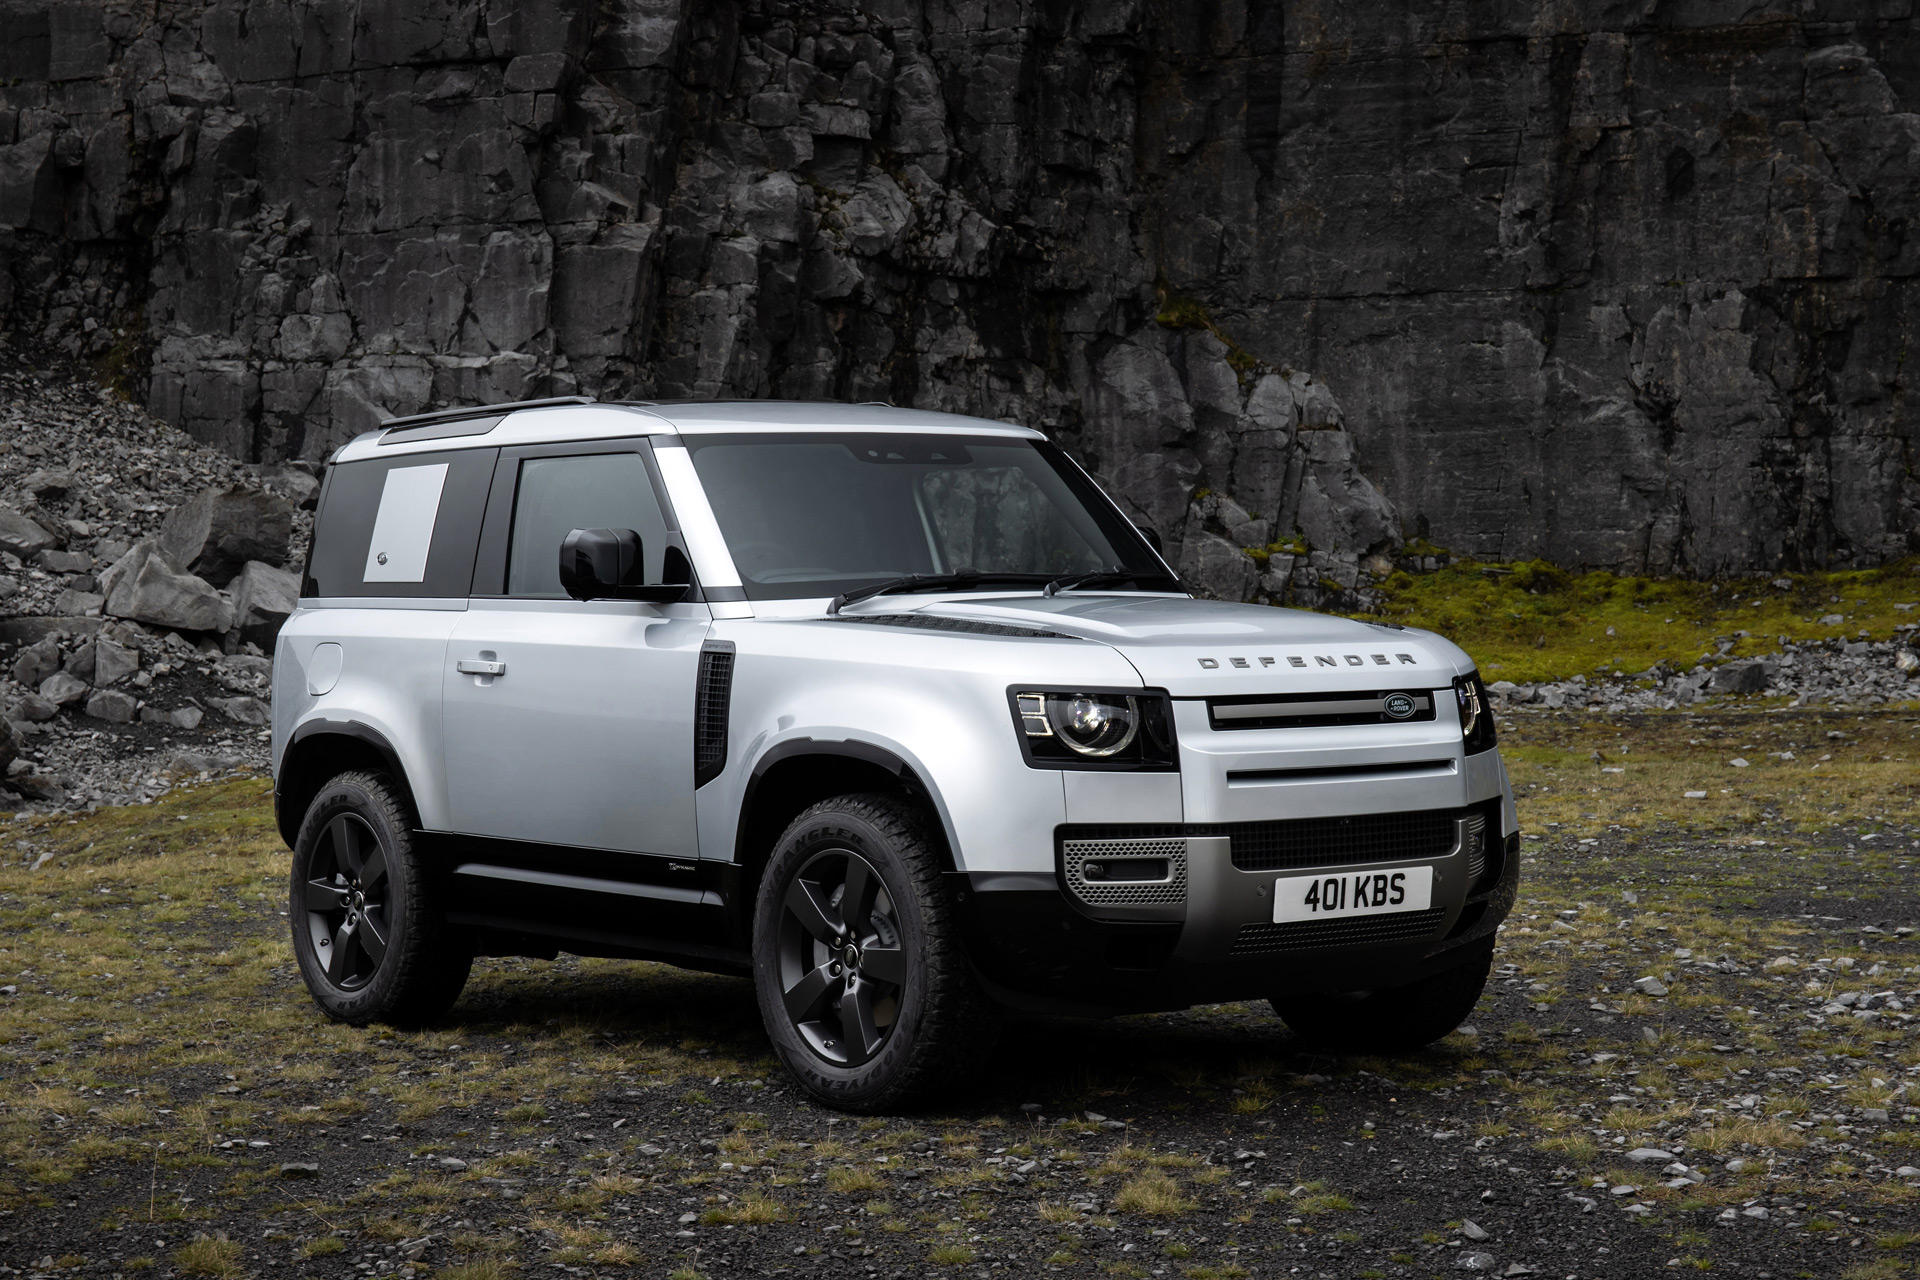 2021 Land Rover Defender Review, Ratings, Specs, Prices ...